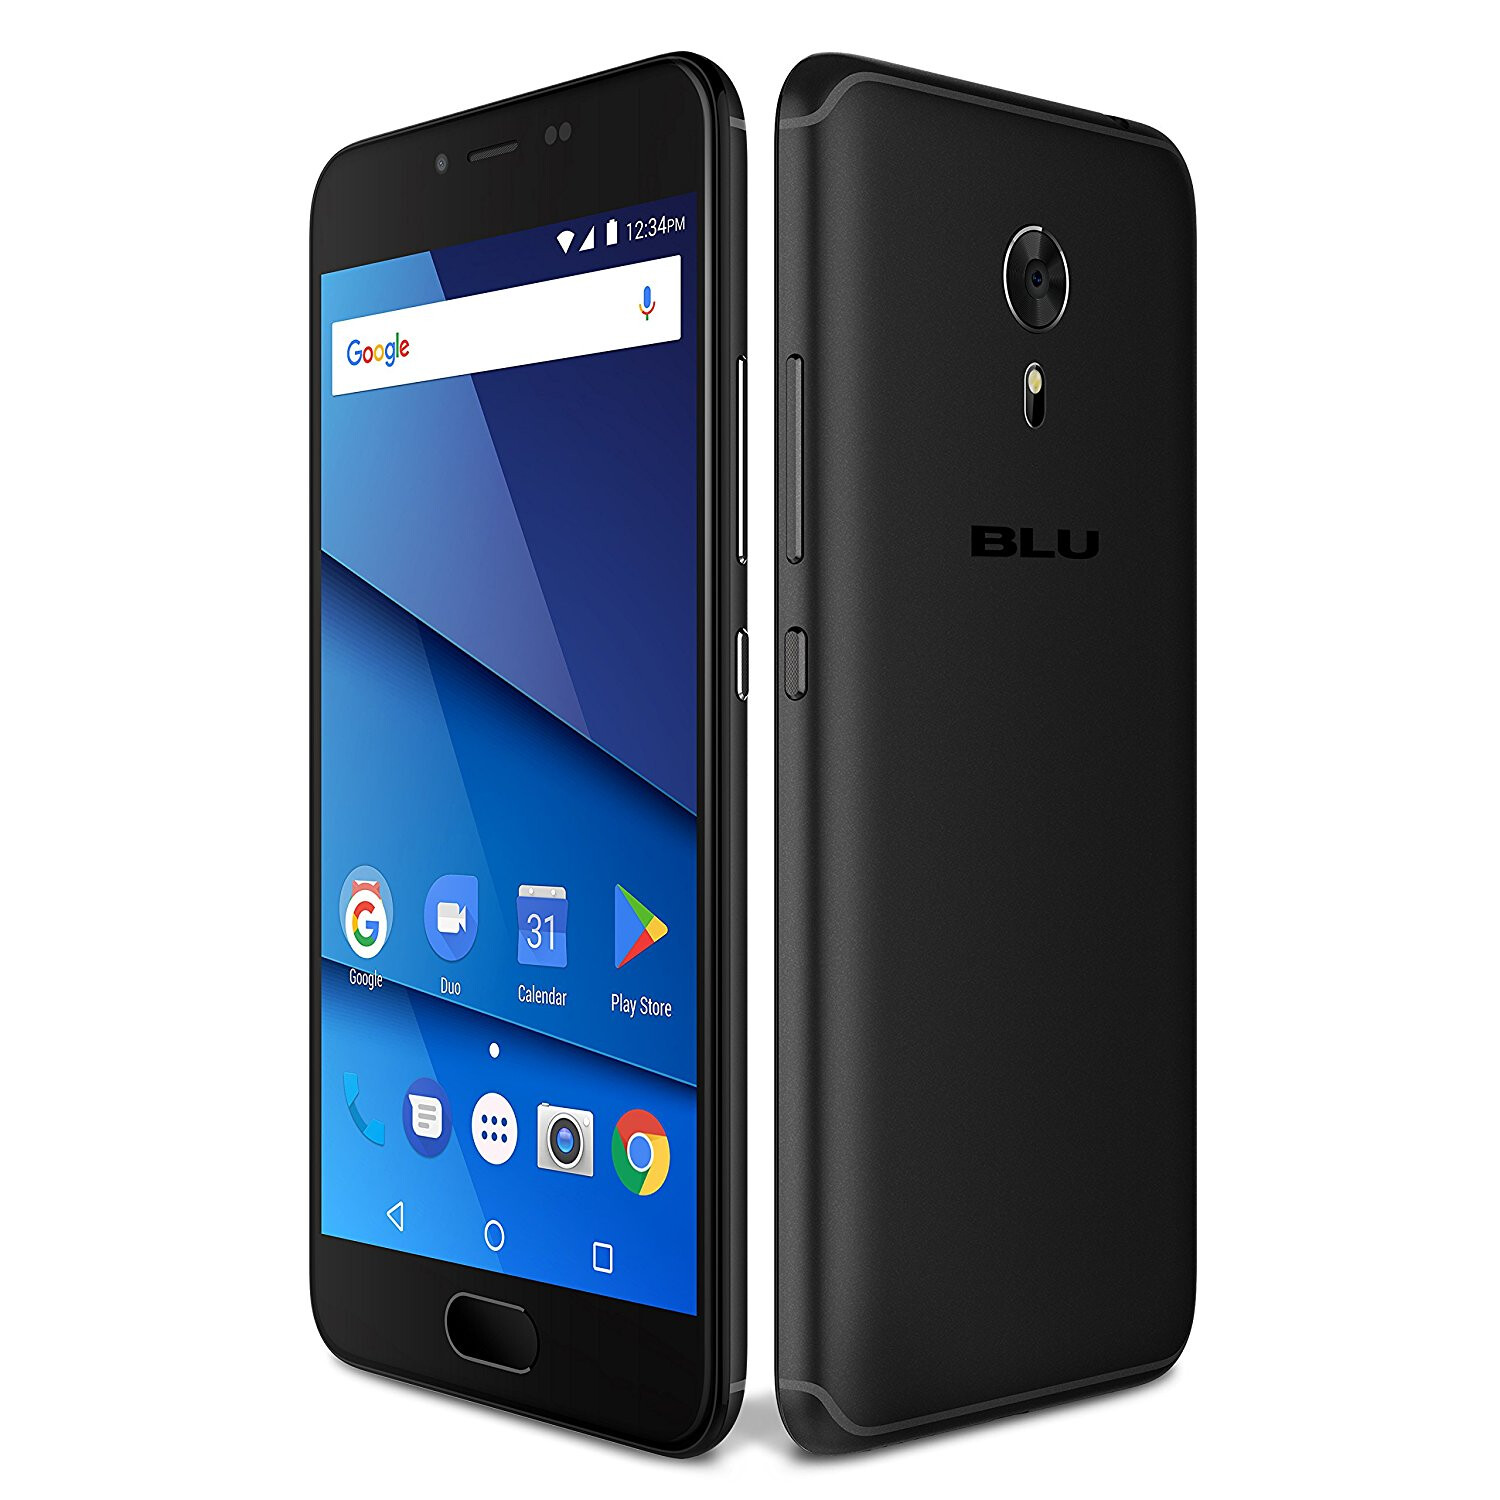 Blu s1 launches as a cheap oneplus 5 wannabe works on sprint for Att nokia mural 6750